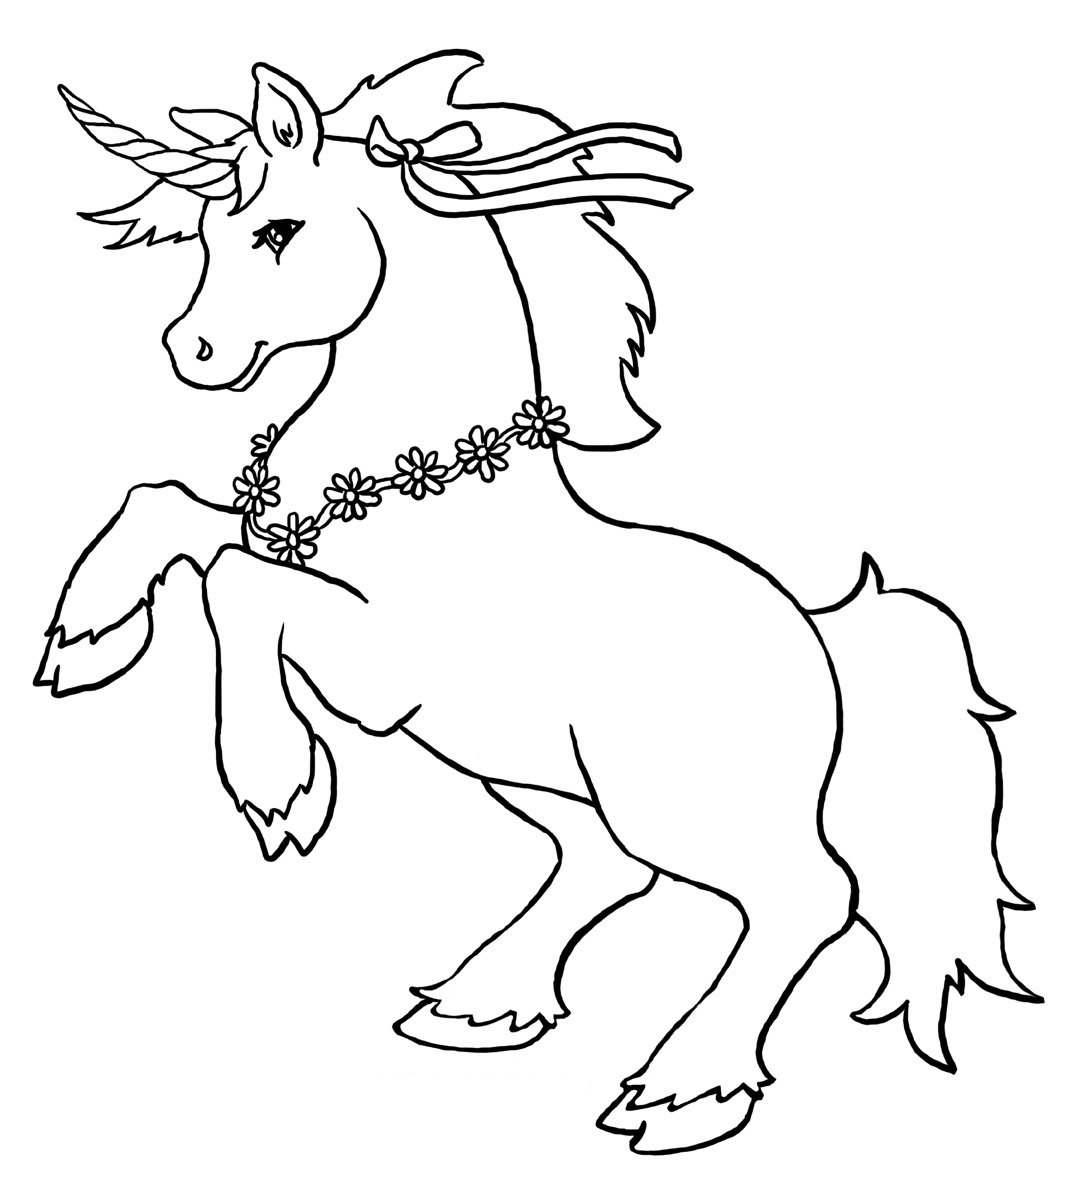 coloring unicorn kids drawing how to draw unicorns for kids step by step fantasy for unicorn kids drawing coloring